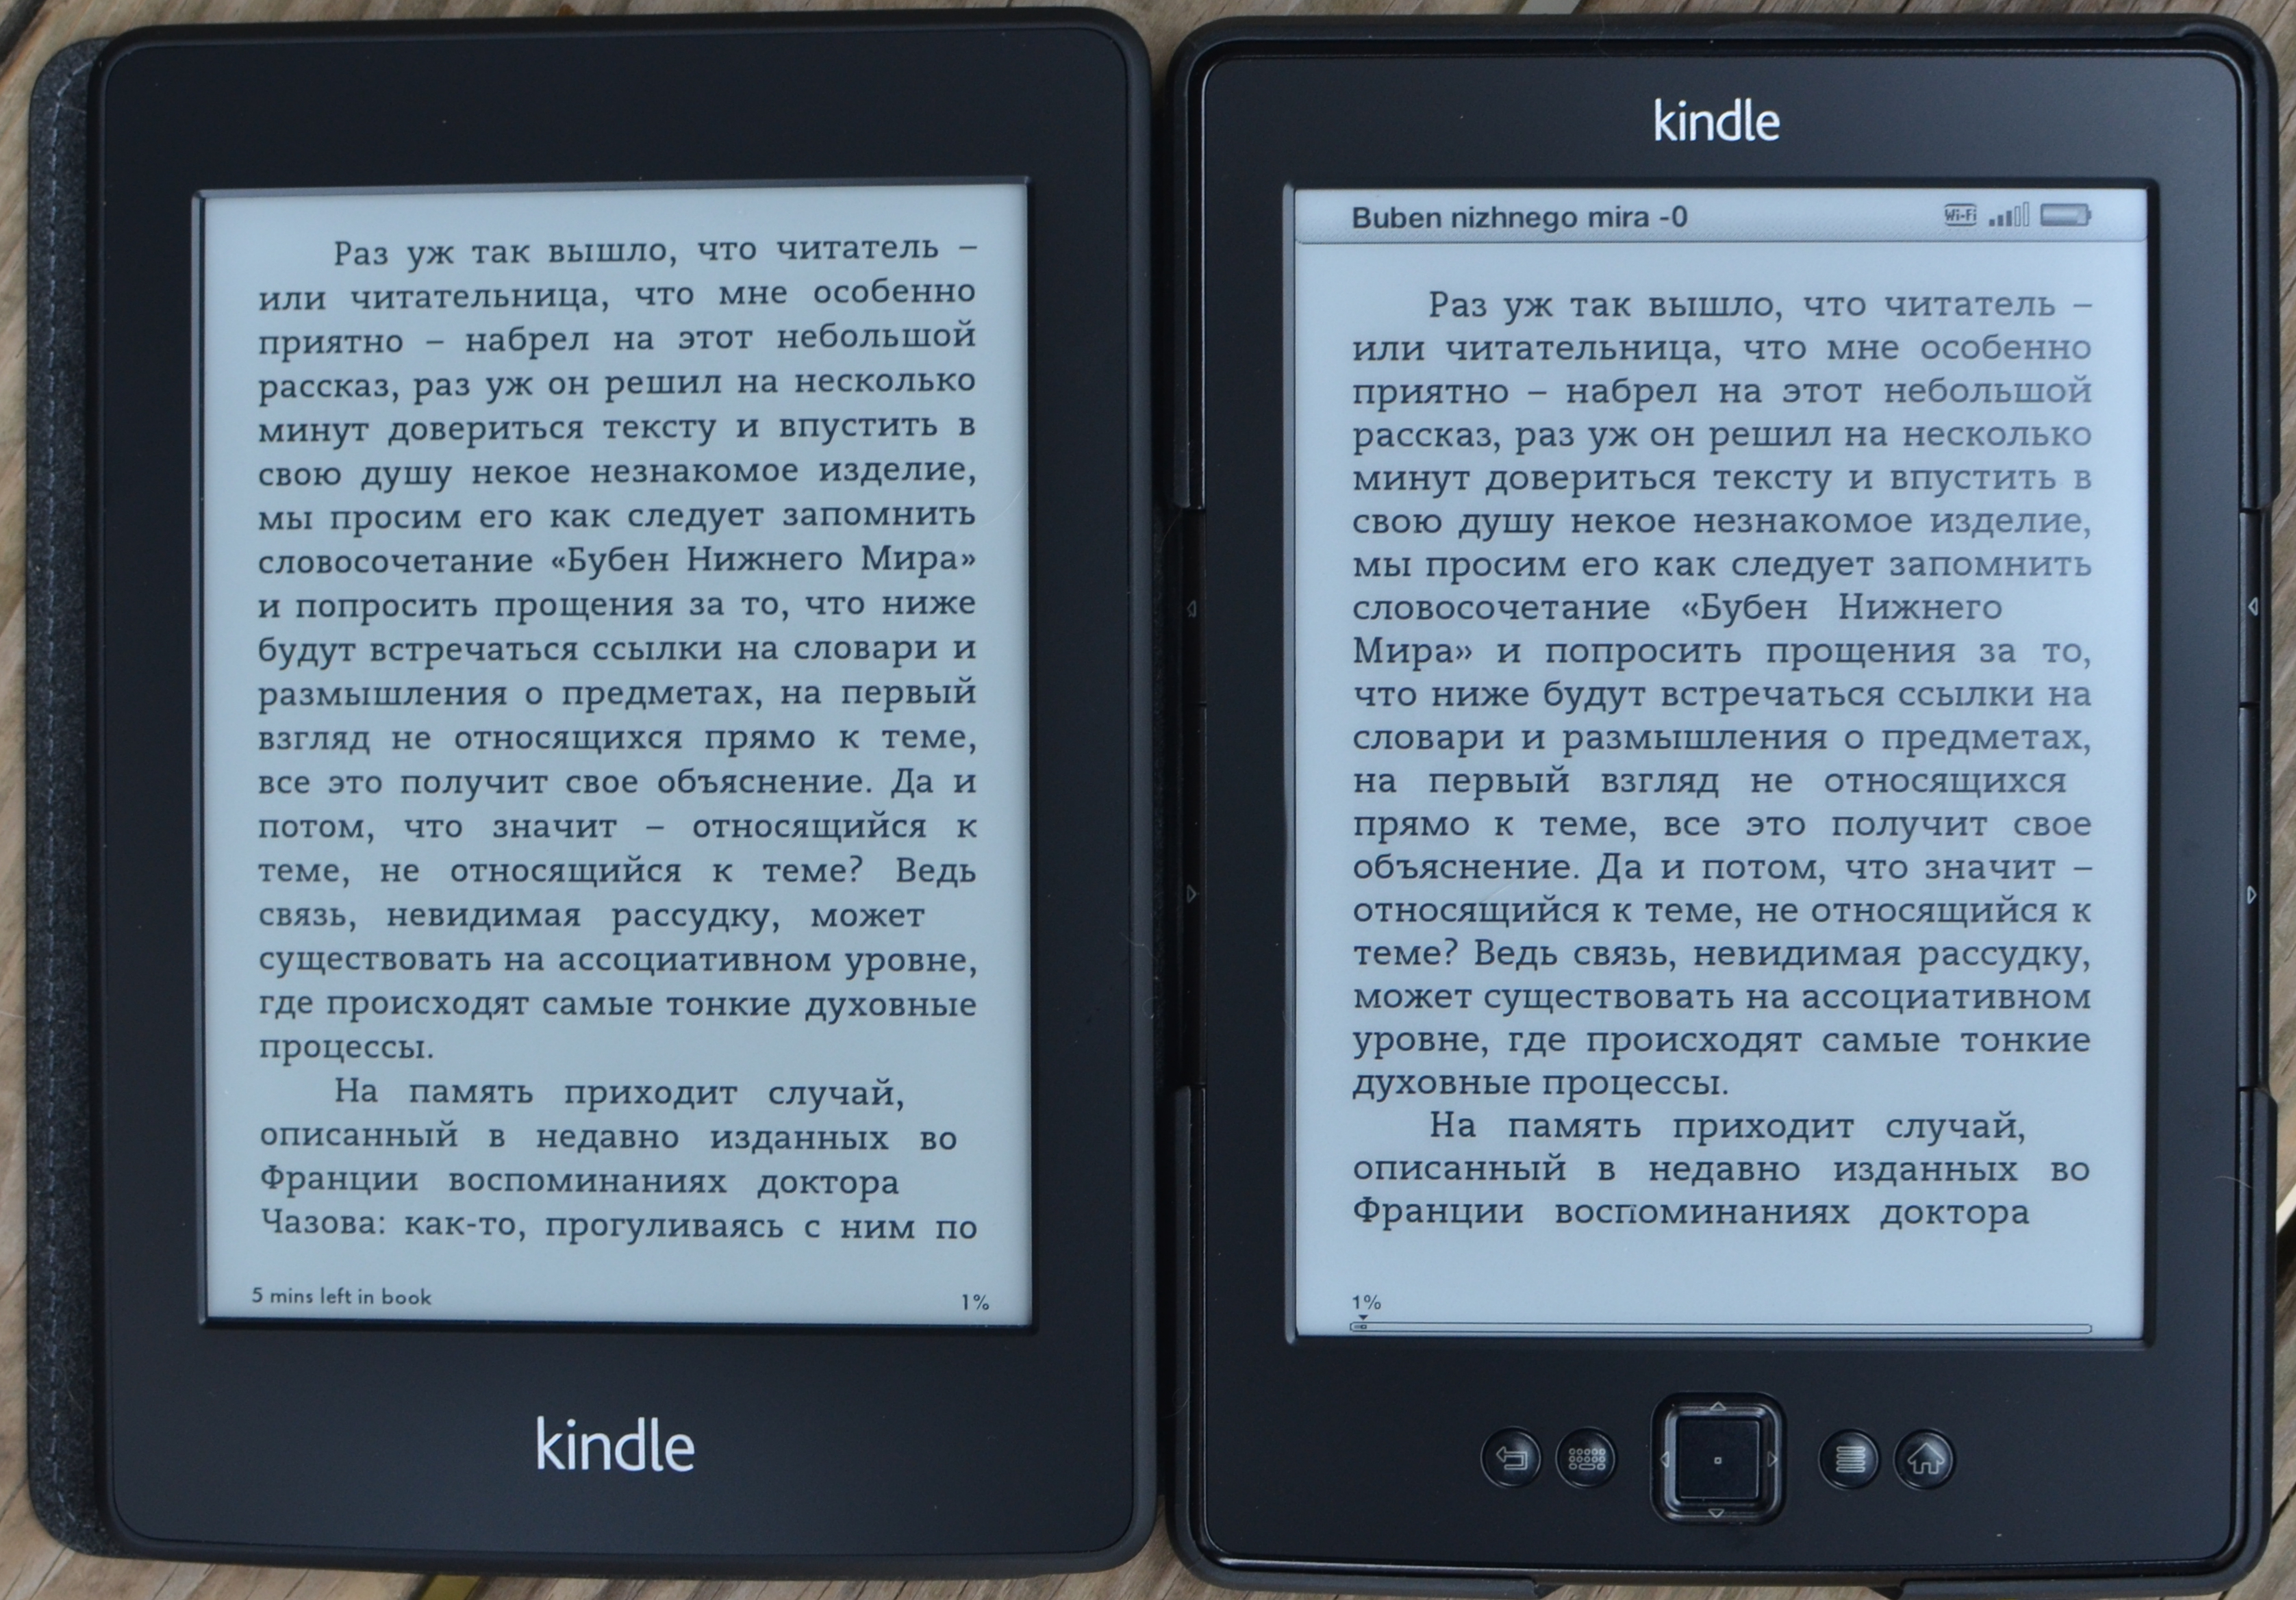 read research papers on kindle From citations to search, papers will improve the way you find, organize, read, cite and share try papers with a 30 day free trial.